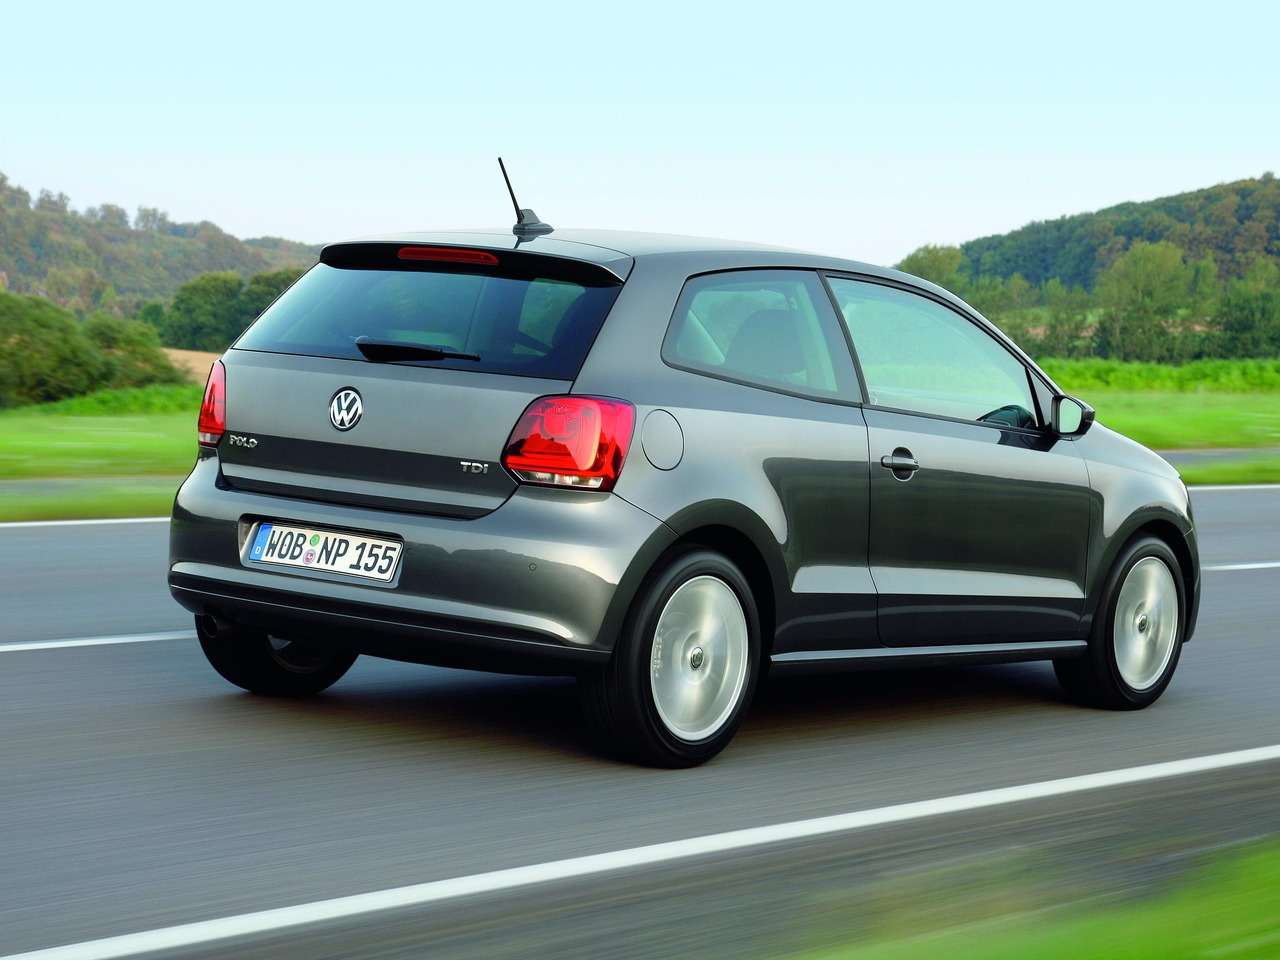 volkswagen polo v 1 2 105 hp tsi dsg. Black Bedroom Furniture Sets. Home Design Ideas